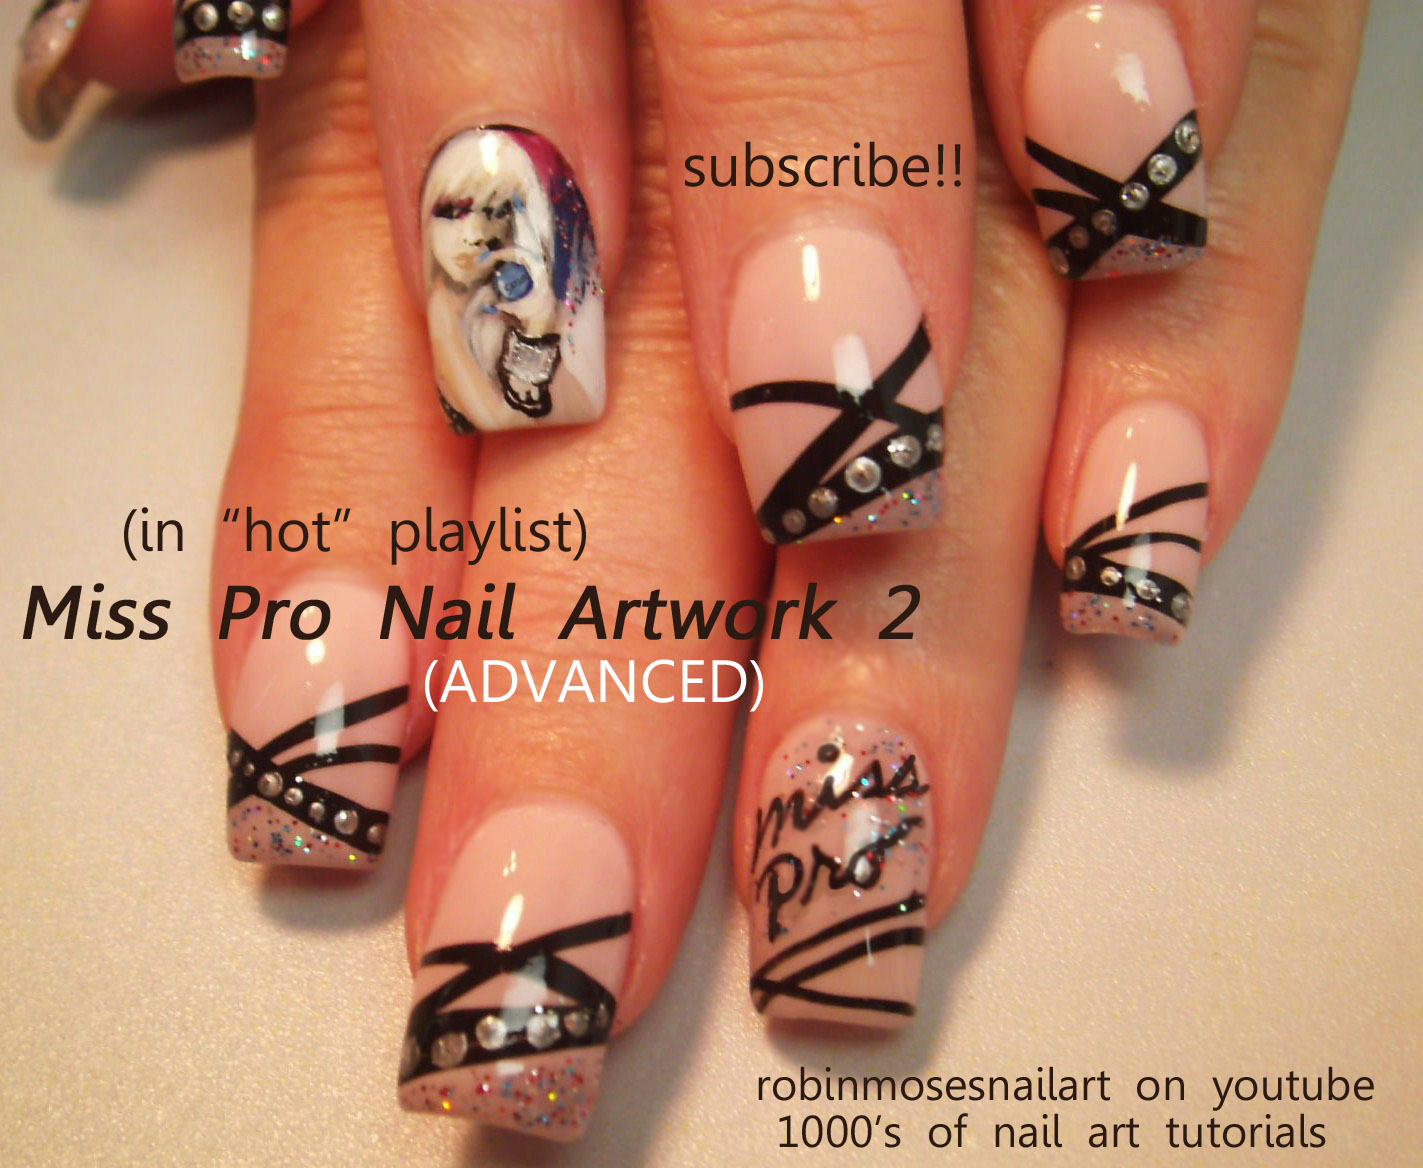 Robin moses nail art how to paint a lady how to paint a portrait how to paint a lady how to paint a portrait painting women miss professional nail miss pro artwork 1 miss pro artwork 2 easy purple nails prinsesfo Images